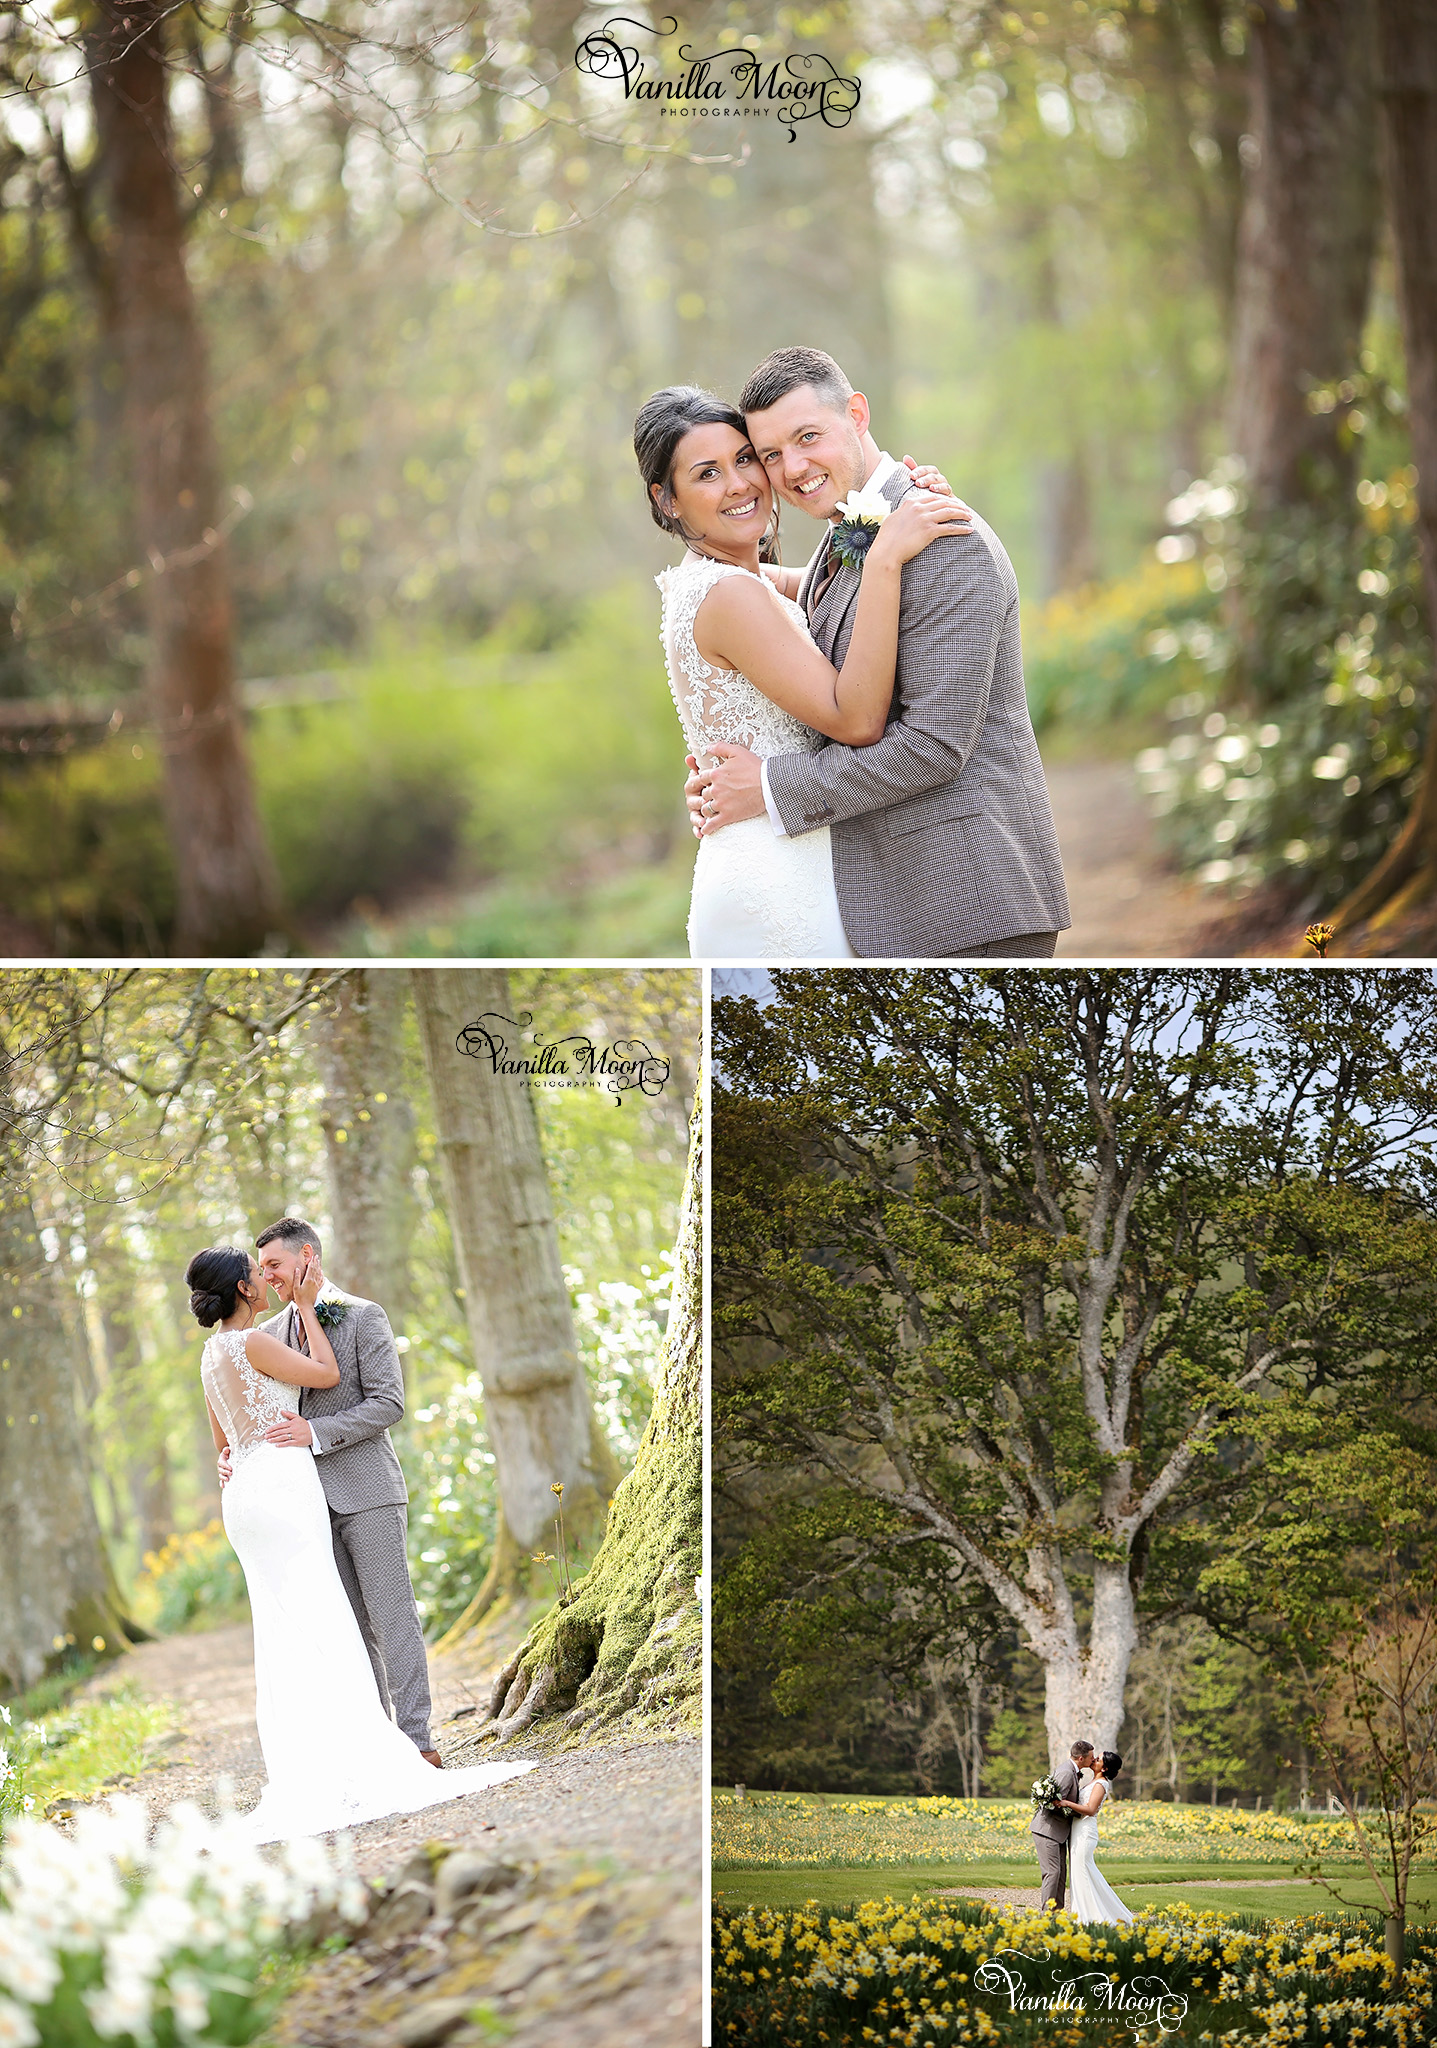 Natural wedding photography in Scotland